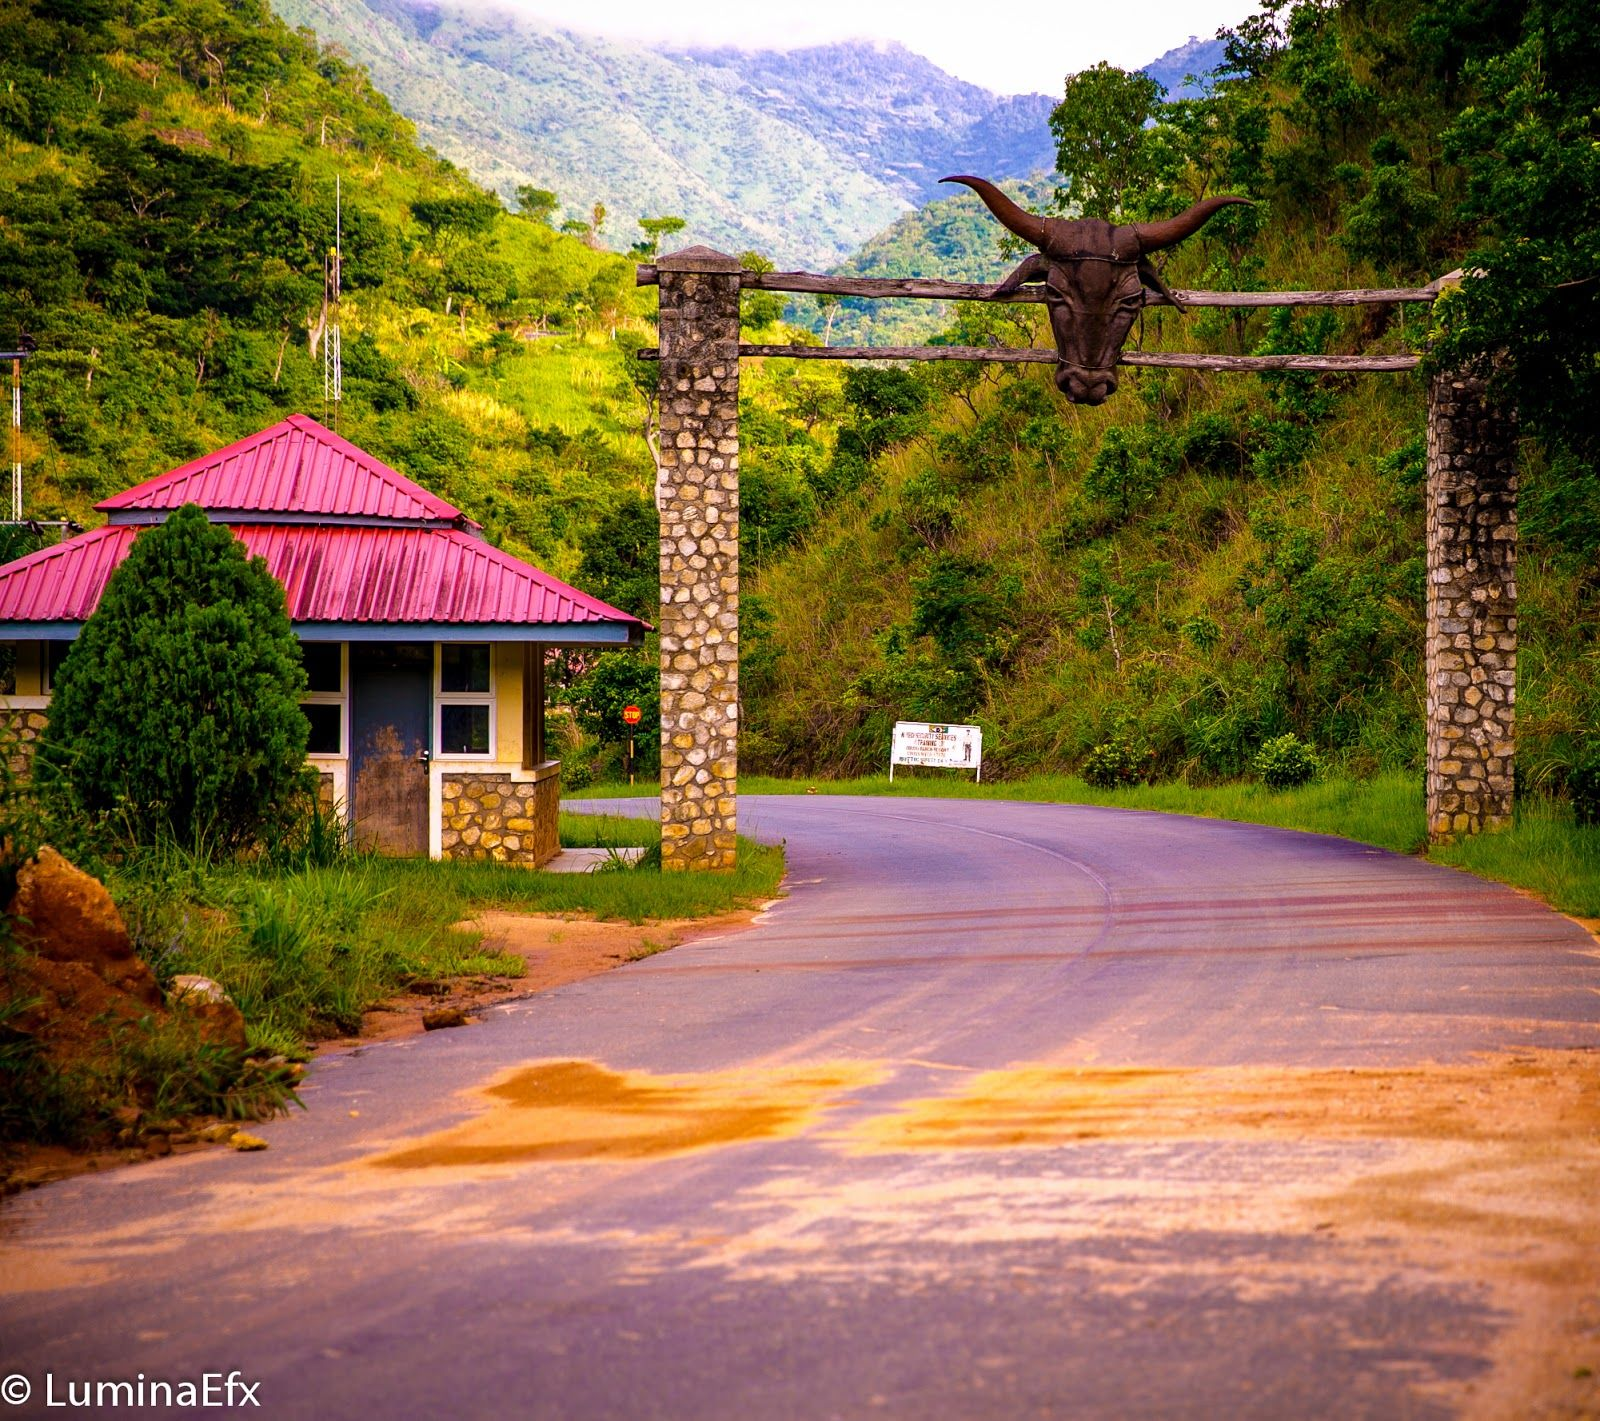 TravelNigeria 5 Places I Want To Visit In Nigeria This